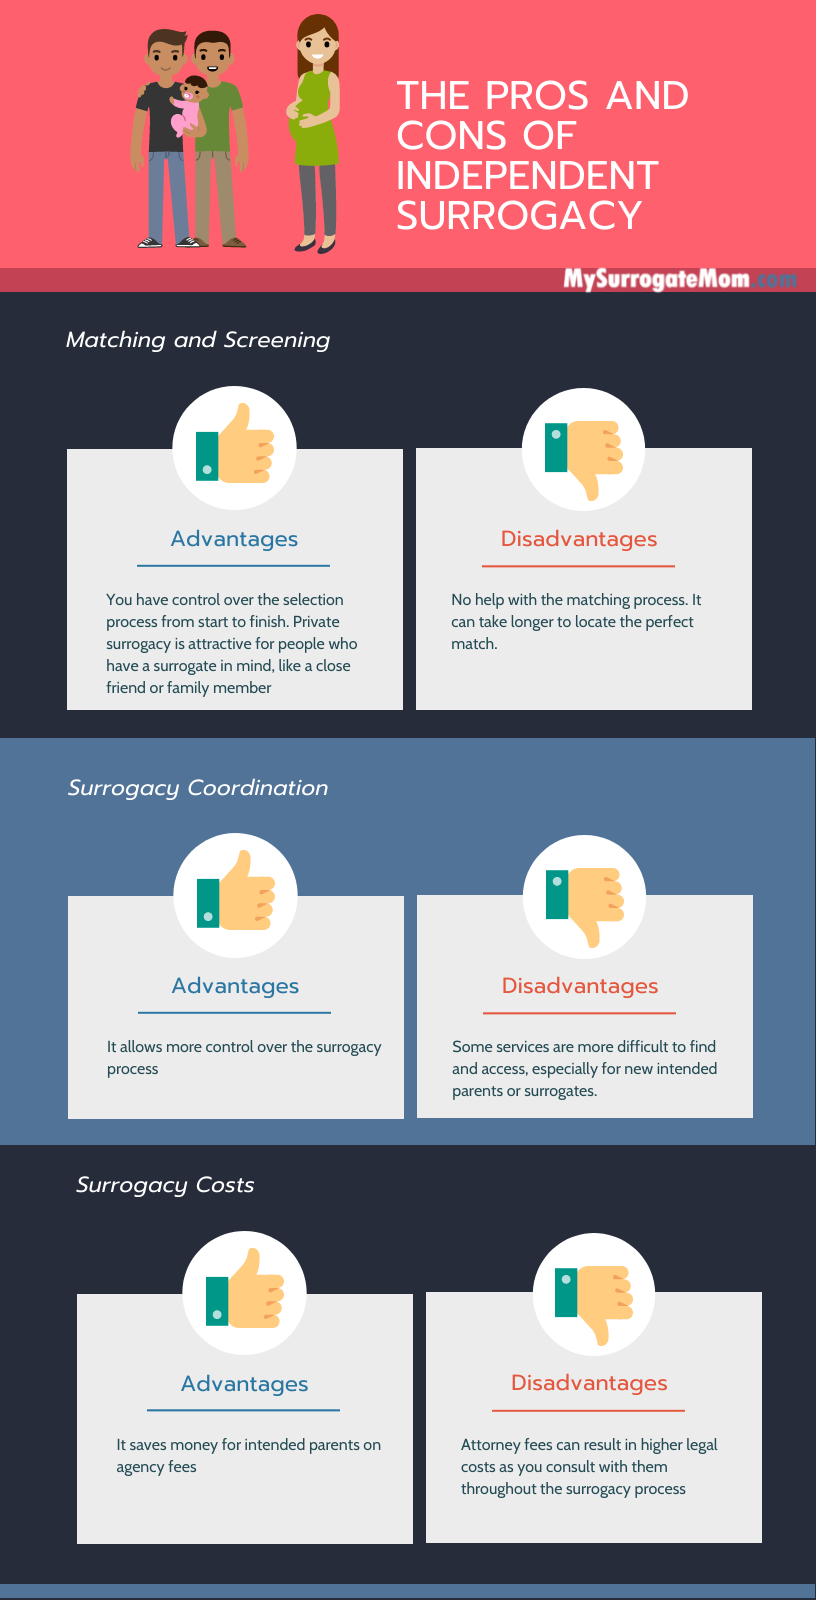 Independent Surrogacy Pros And Cons